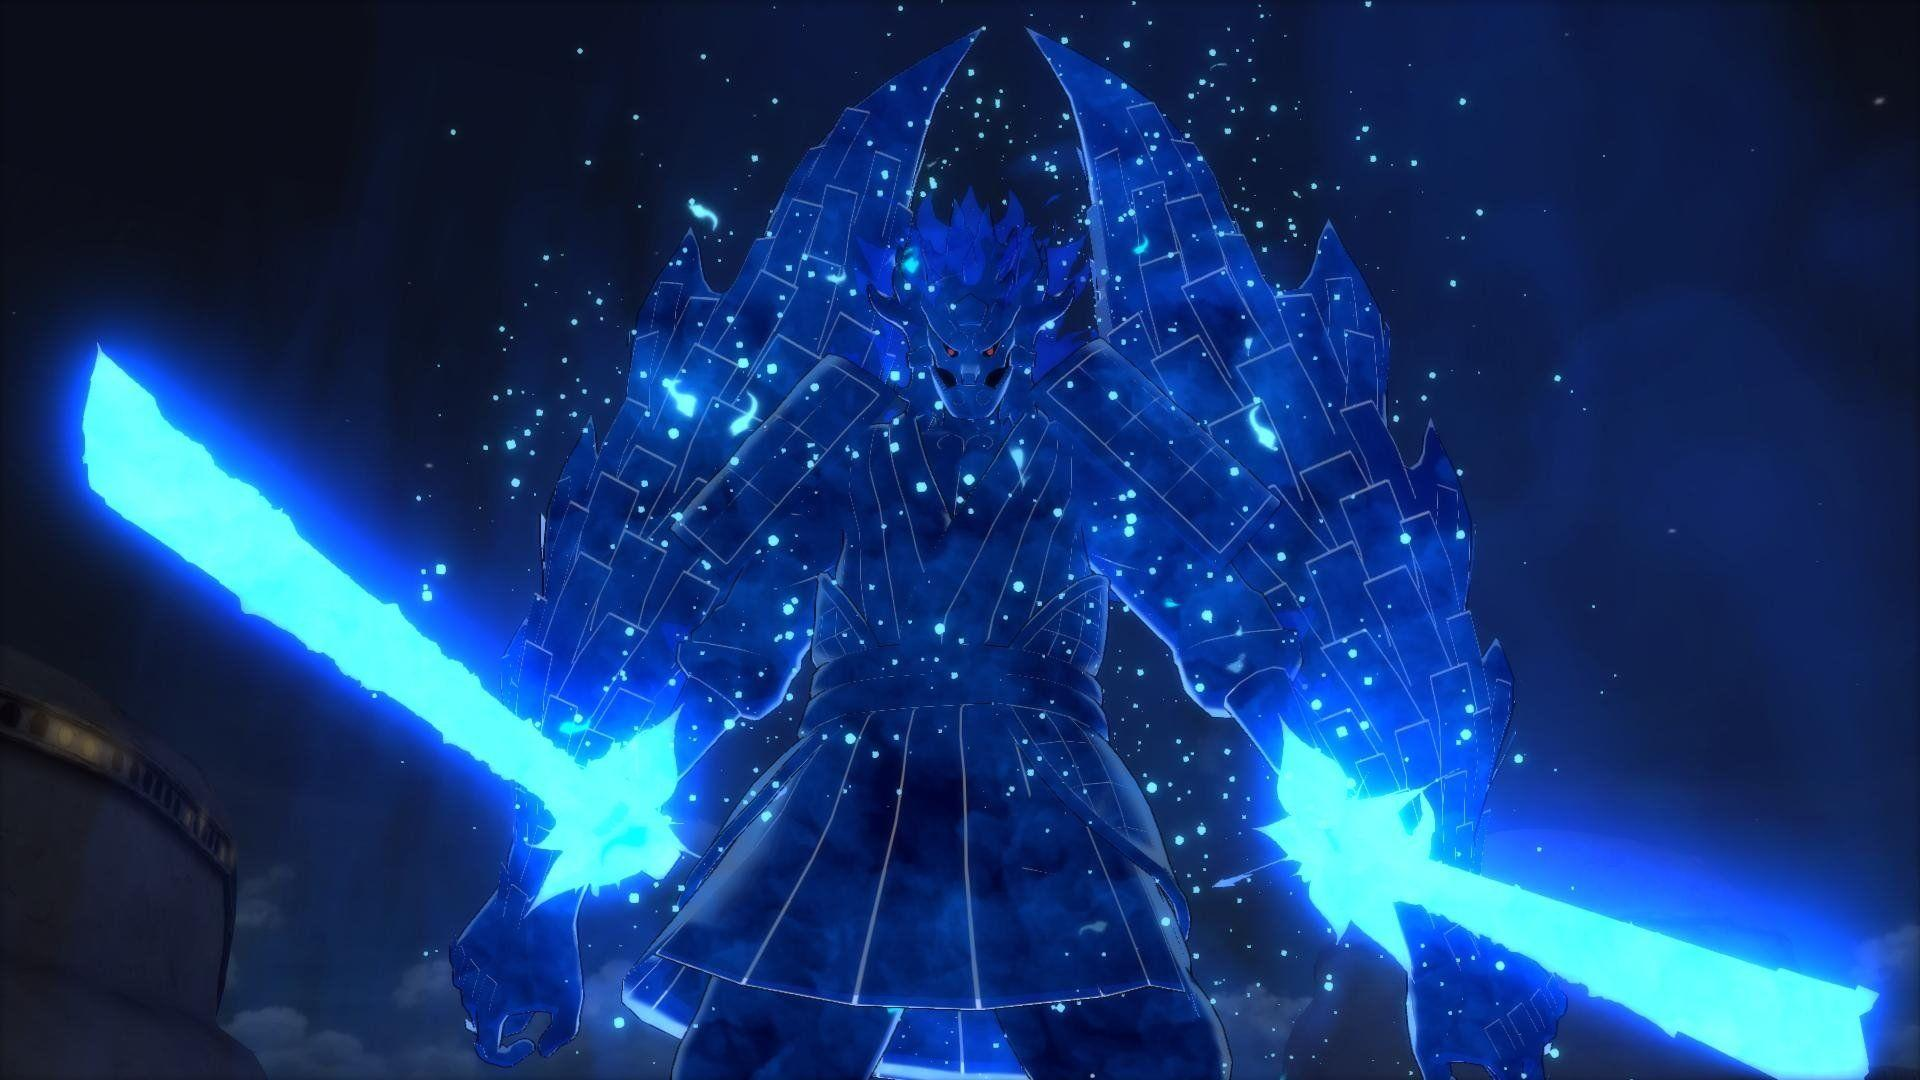 madara susanoo Full HD Wallpapers and Backgrounds Image